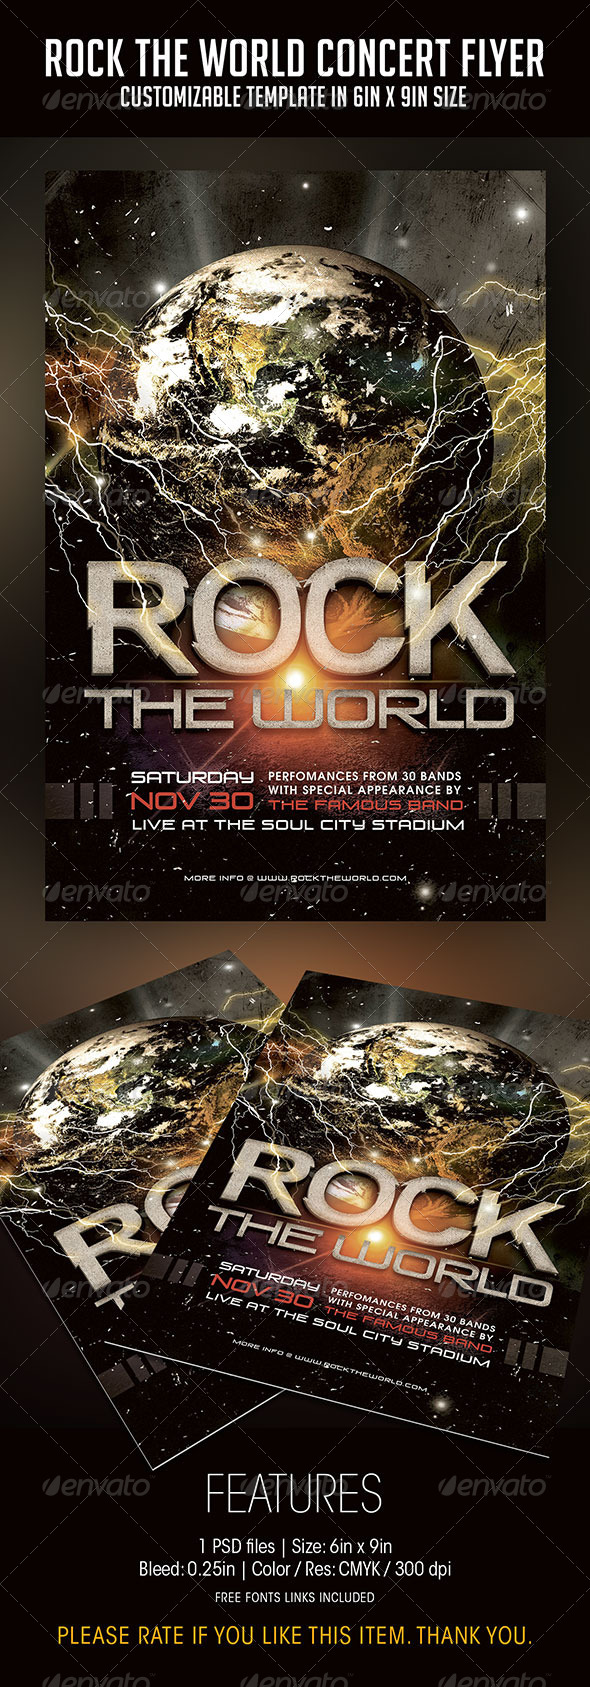 Rock The World Concert Flyer - Concerts Events